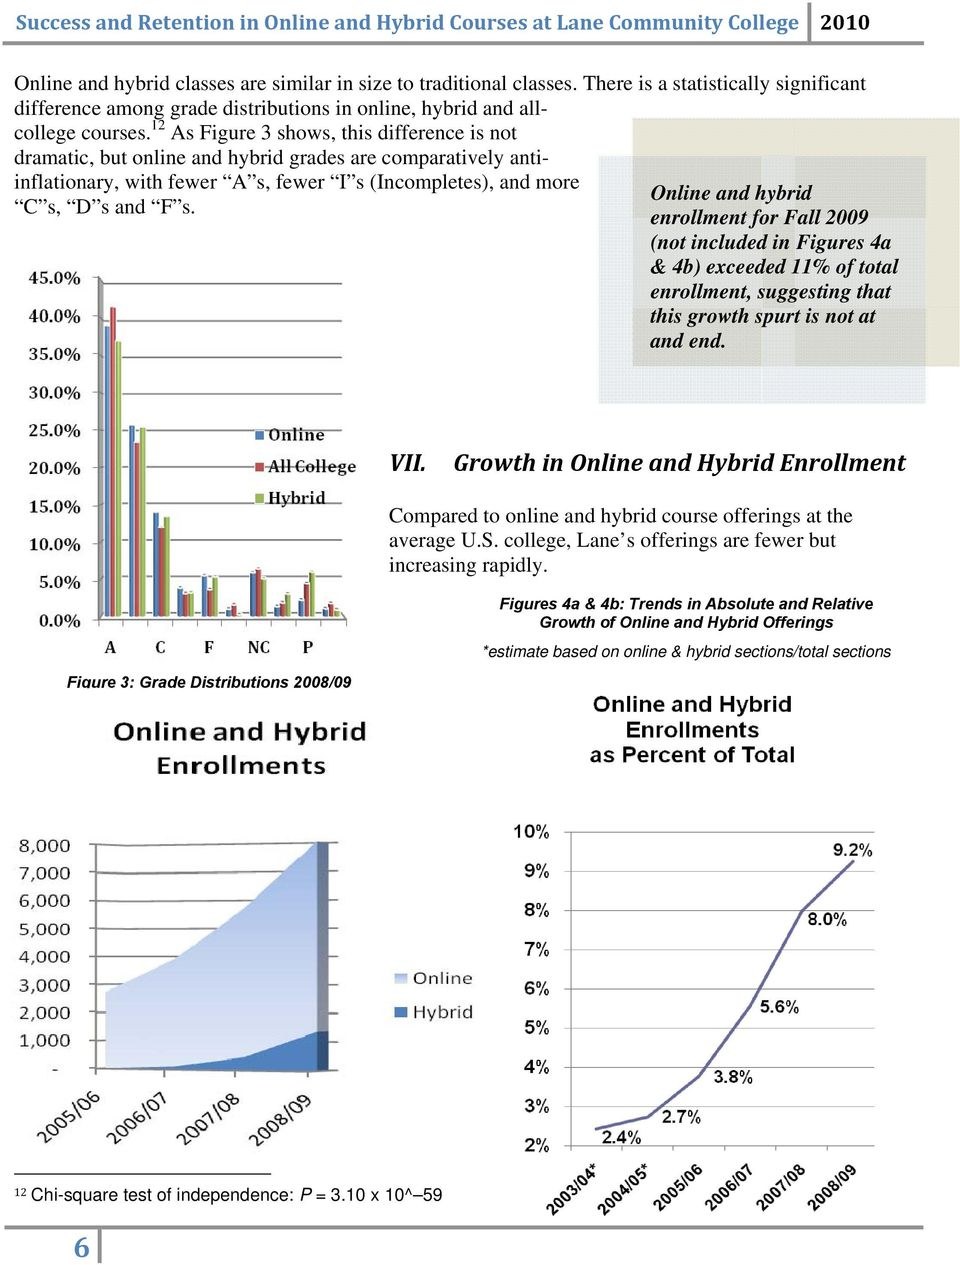 Online and hybrid enrollment for Fall 2009 (not included in Figures 4a & 4b) exceeded 11% of total enrollment, suggesting that this growth spurt is not at and end. VII.